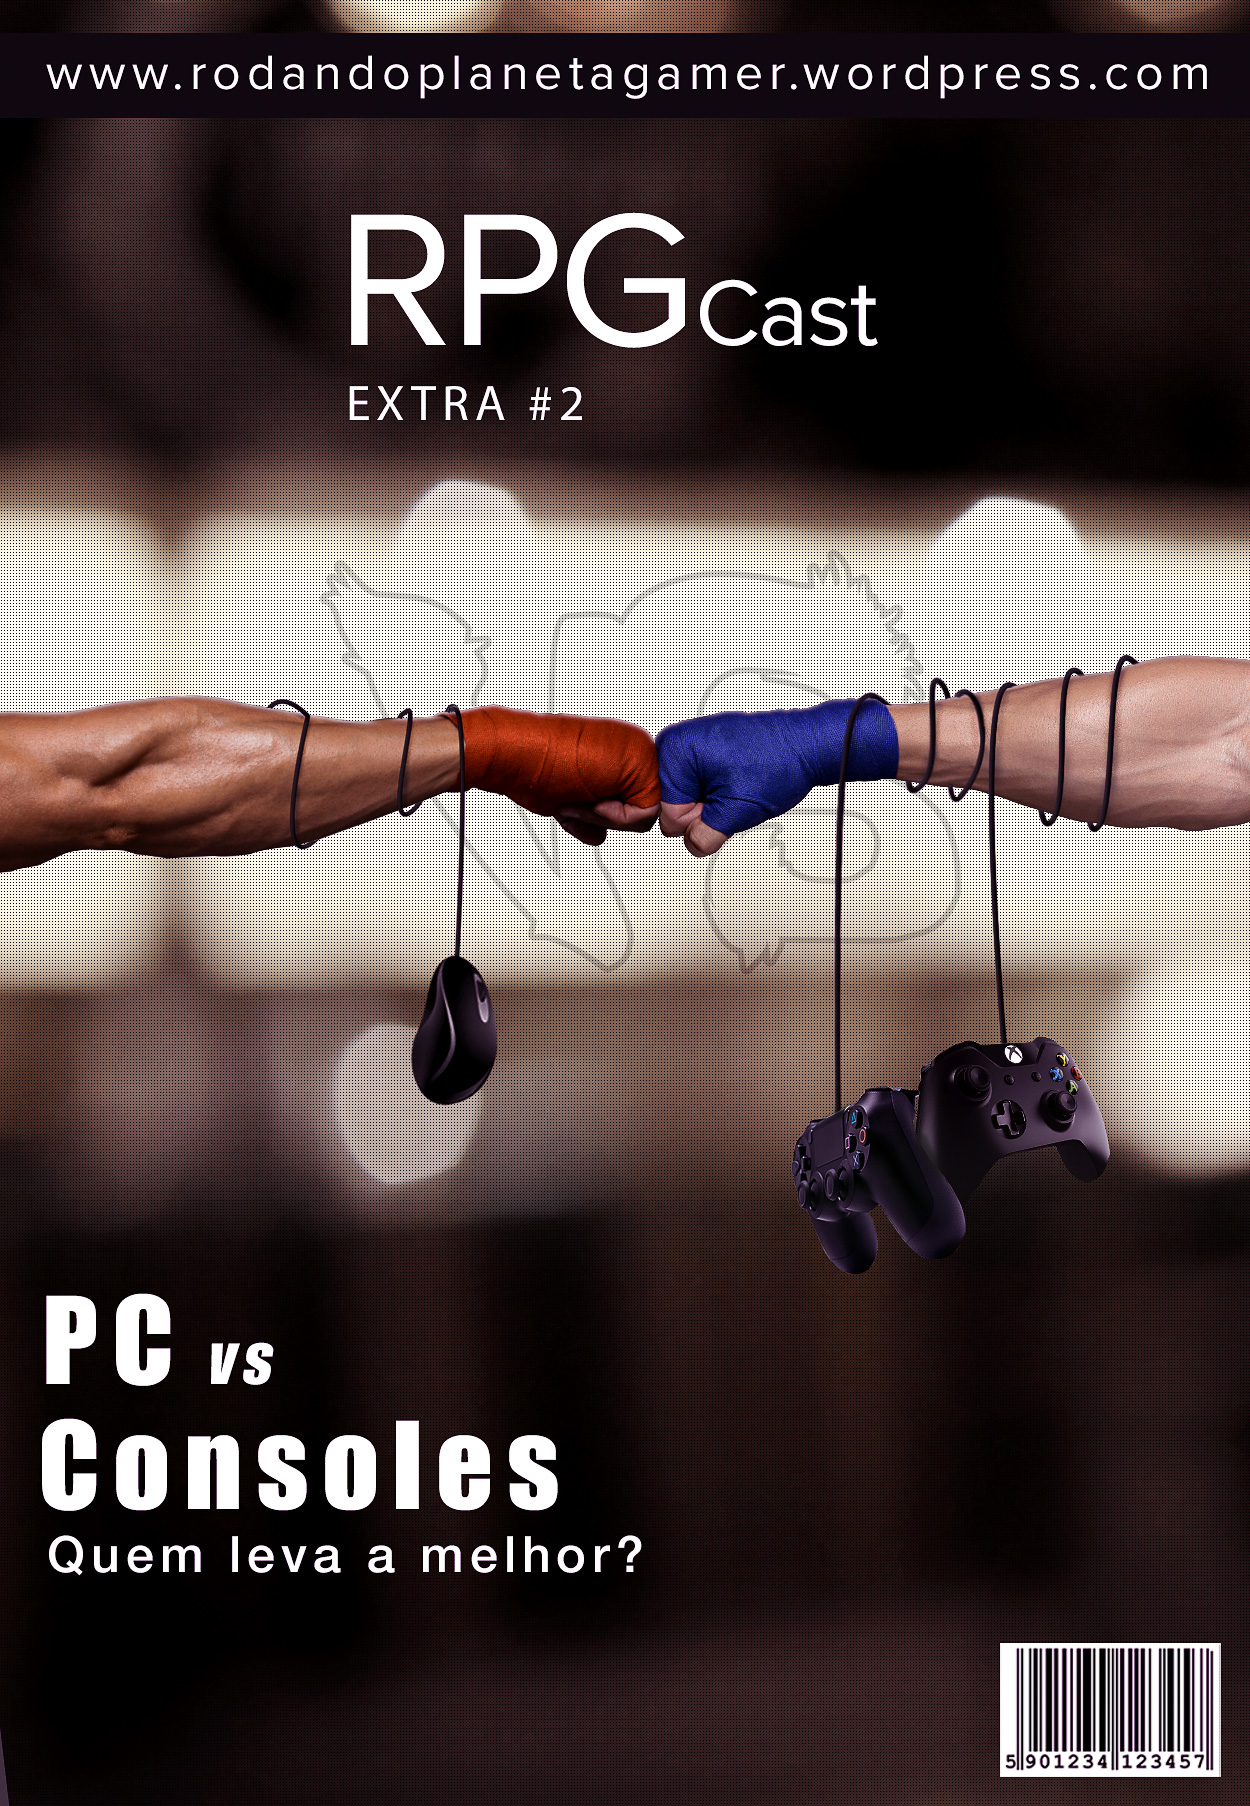 RPG Cast Extra #2 Capa by: Henrique